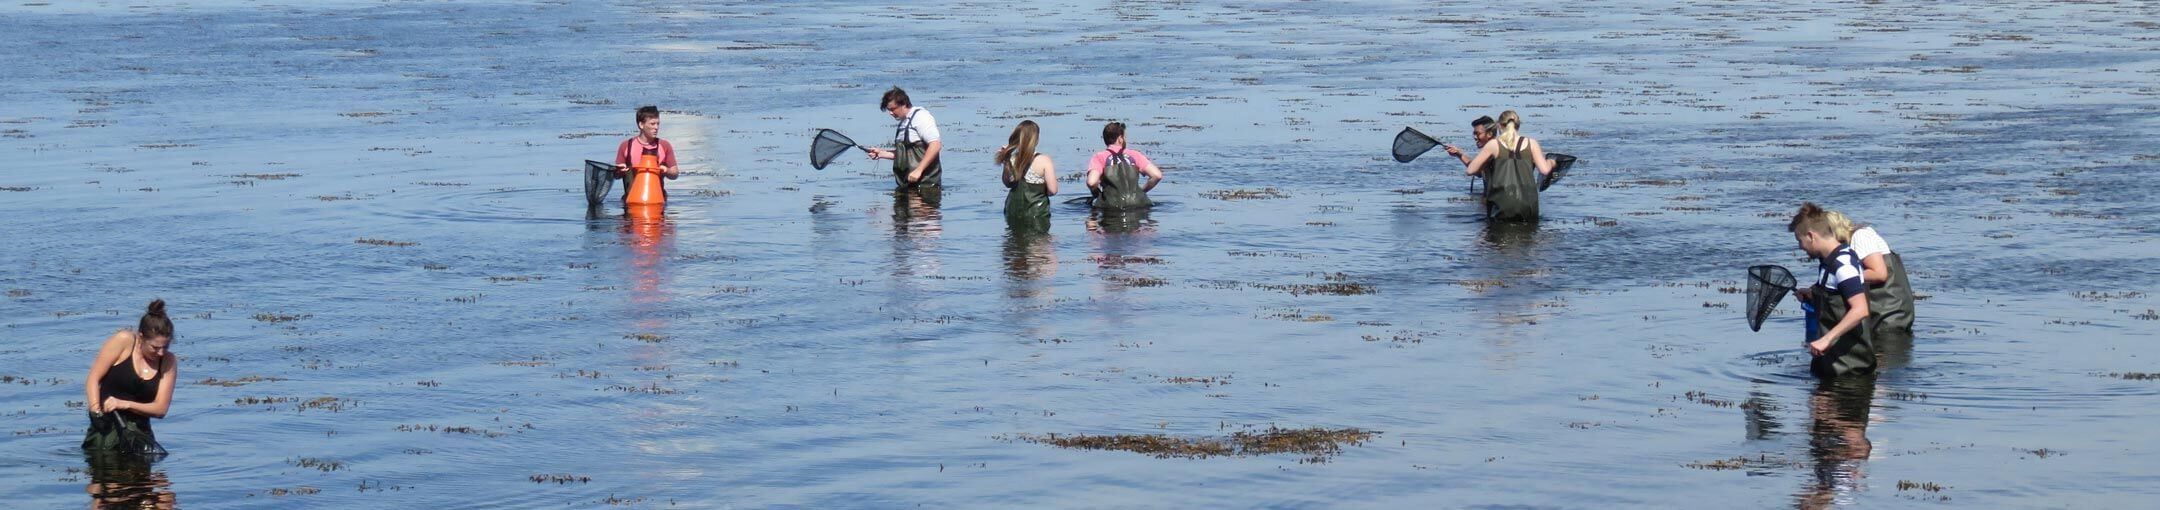 Nine students with fish nets standing in water